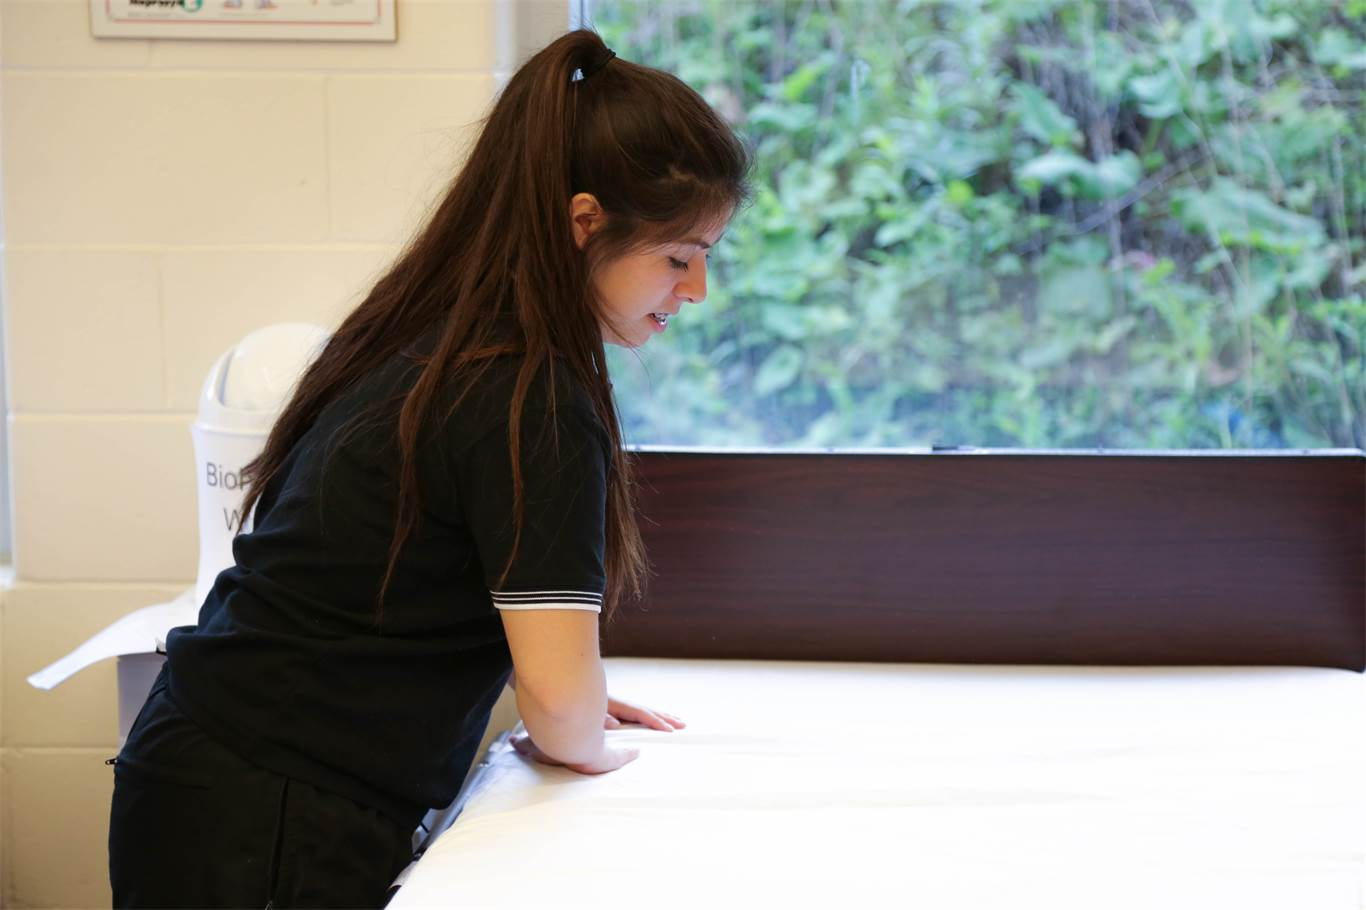 When making a bed, students learn to smooth out wrinkles to lessen irritation from a patient's ulcers.